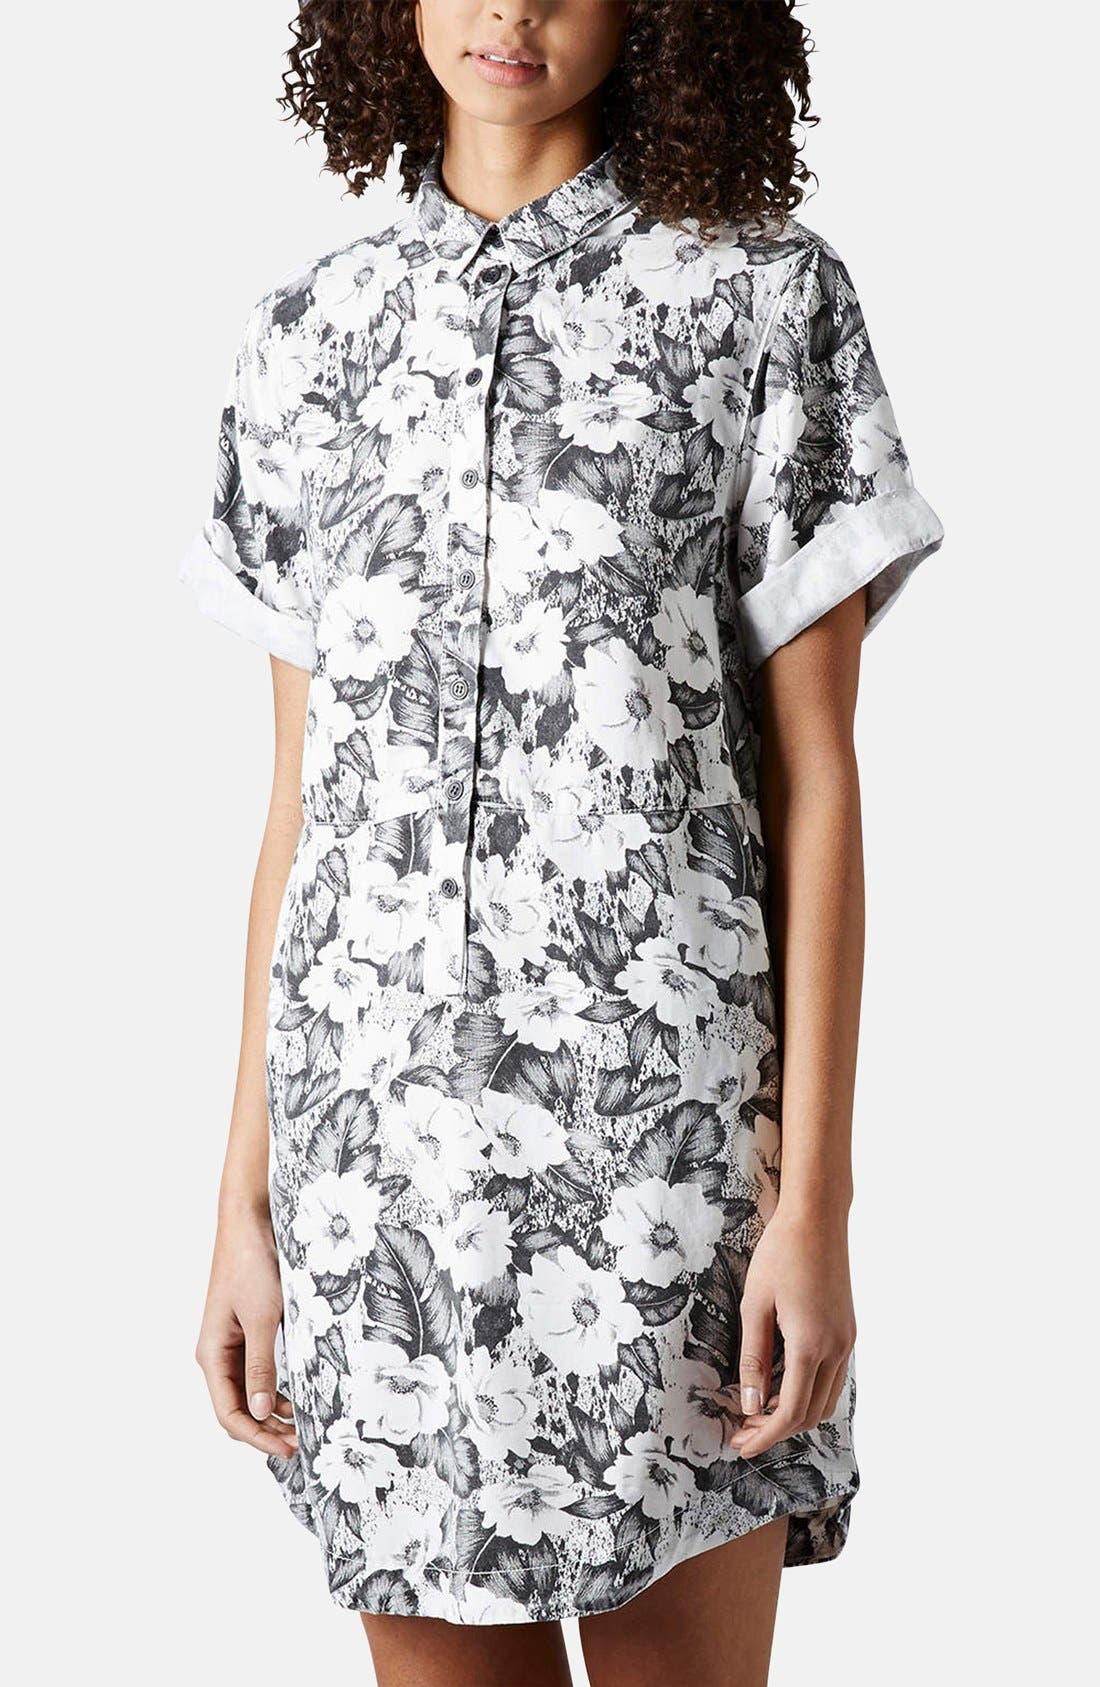 Alternate Image 1 Selected - Topshop 'Aloha' Print Shirt Dress